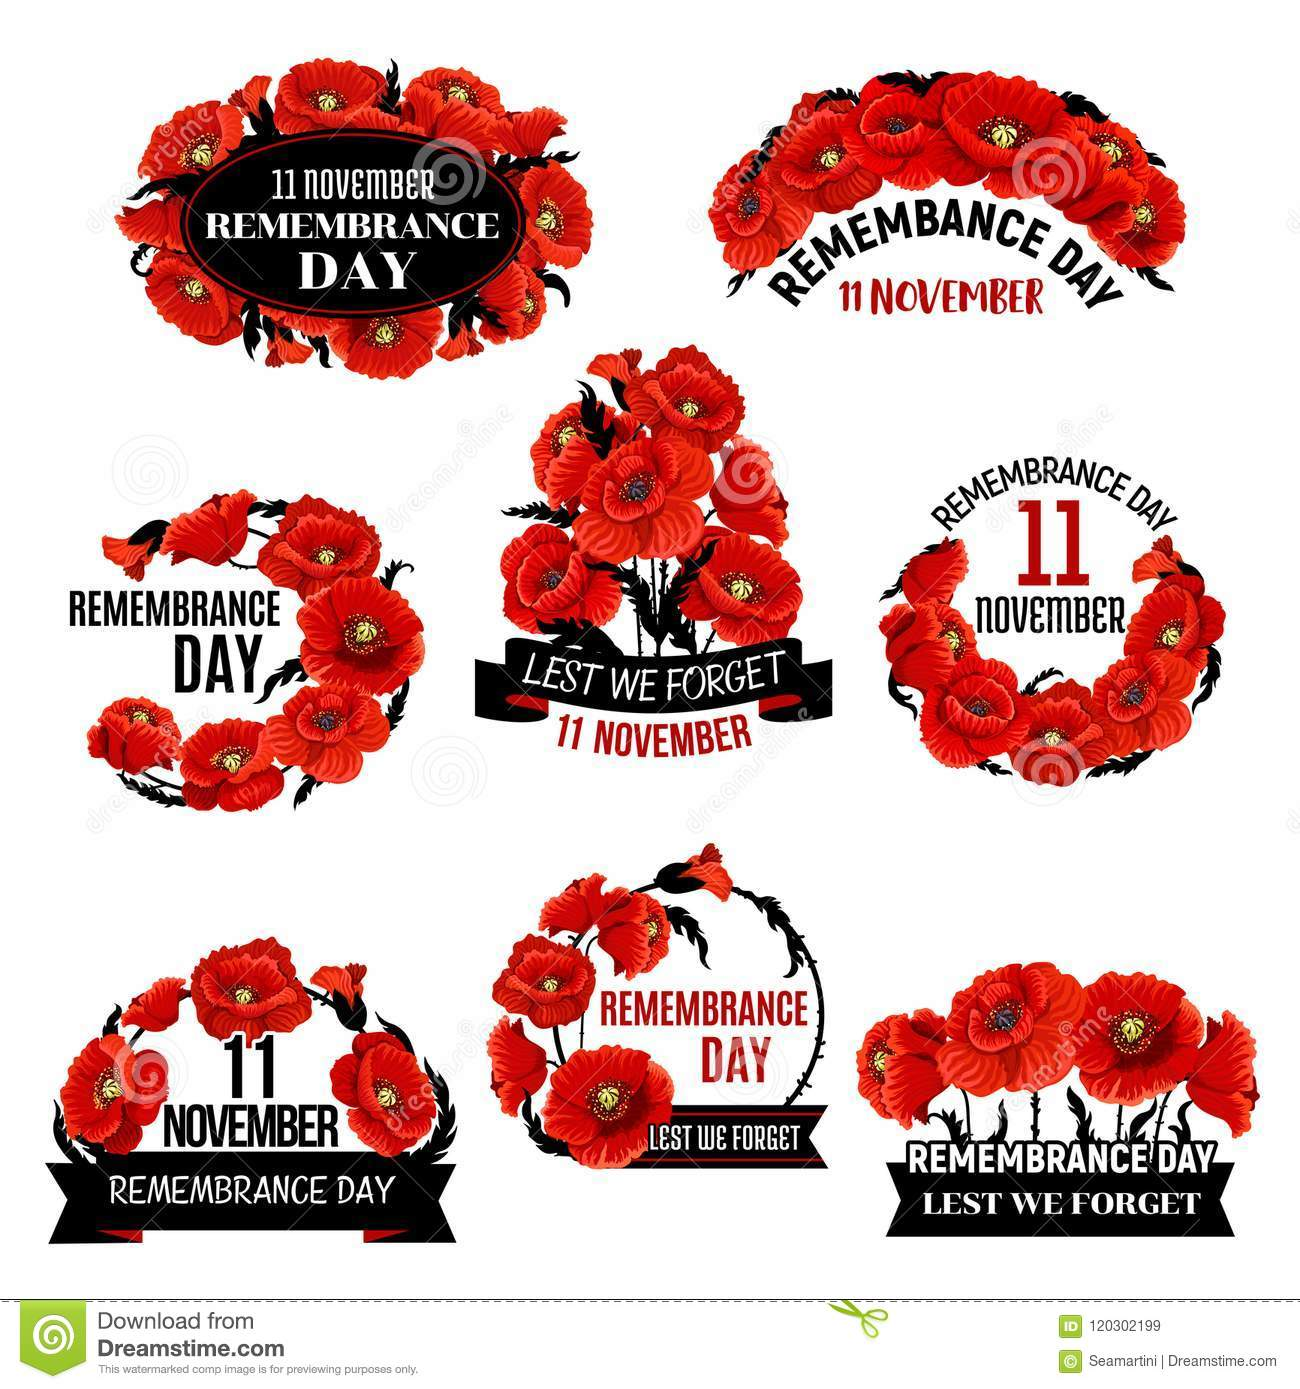 Remembrance day red poppy flower wreath icon stock vector remembrance day red poppy flower wreath icon mightylinksfo